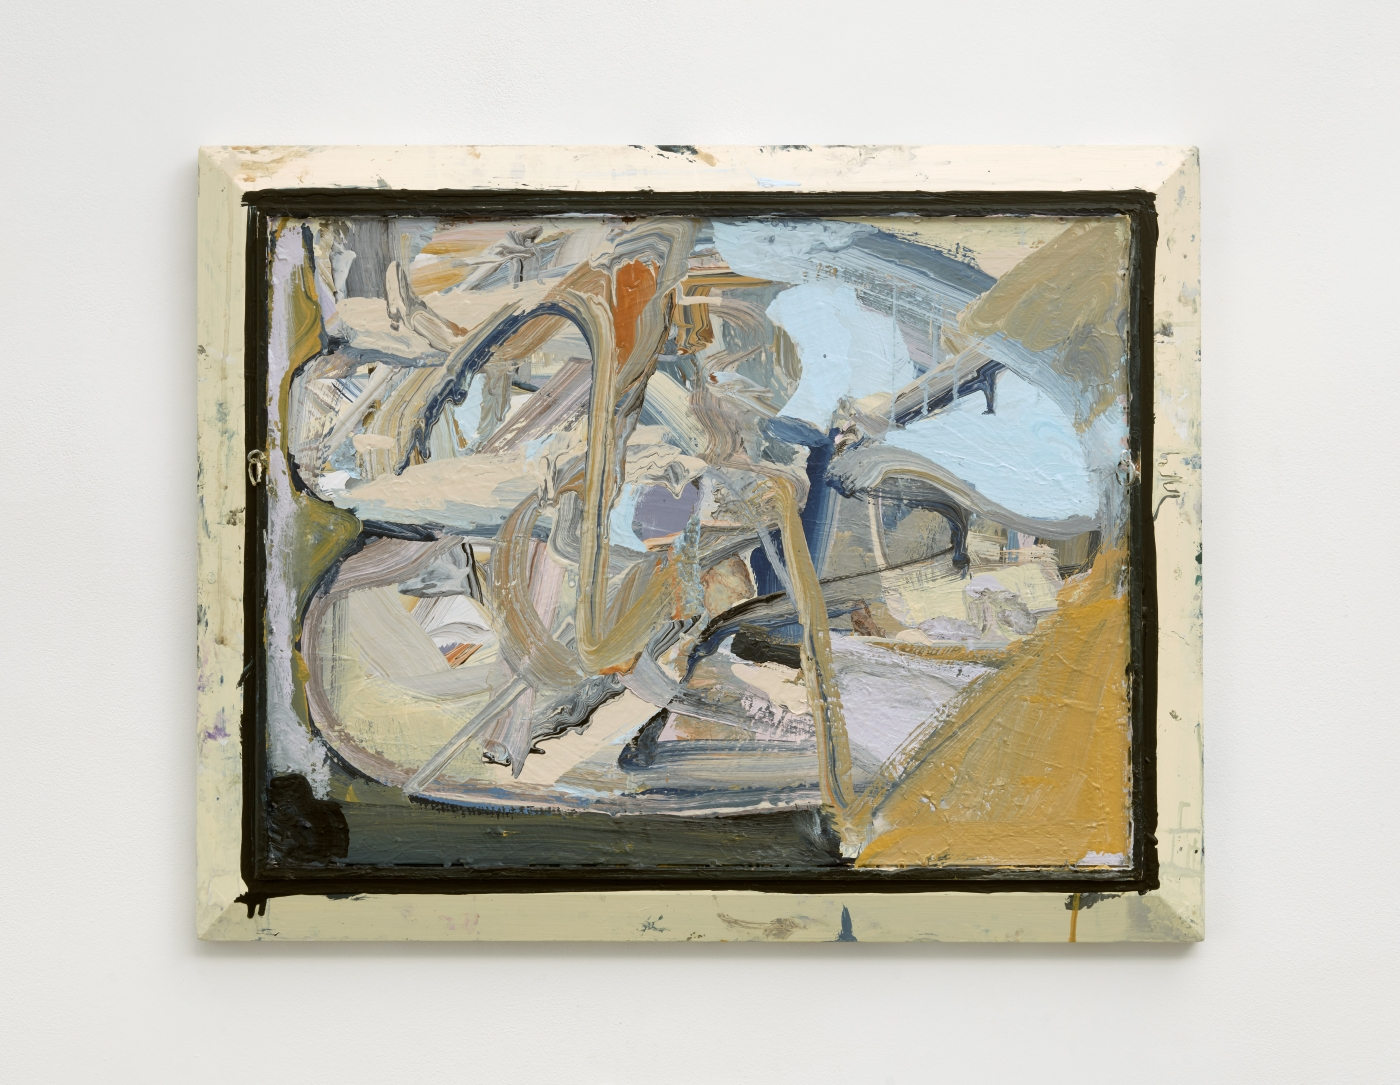 abstract painting in cream, pale blue, marigold and gray tones